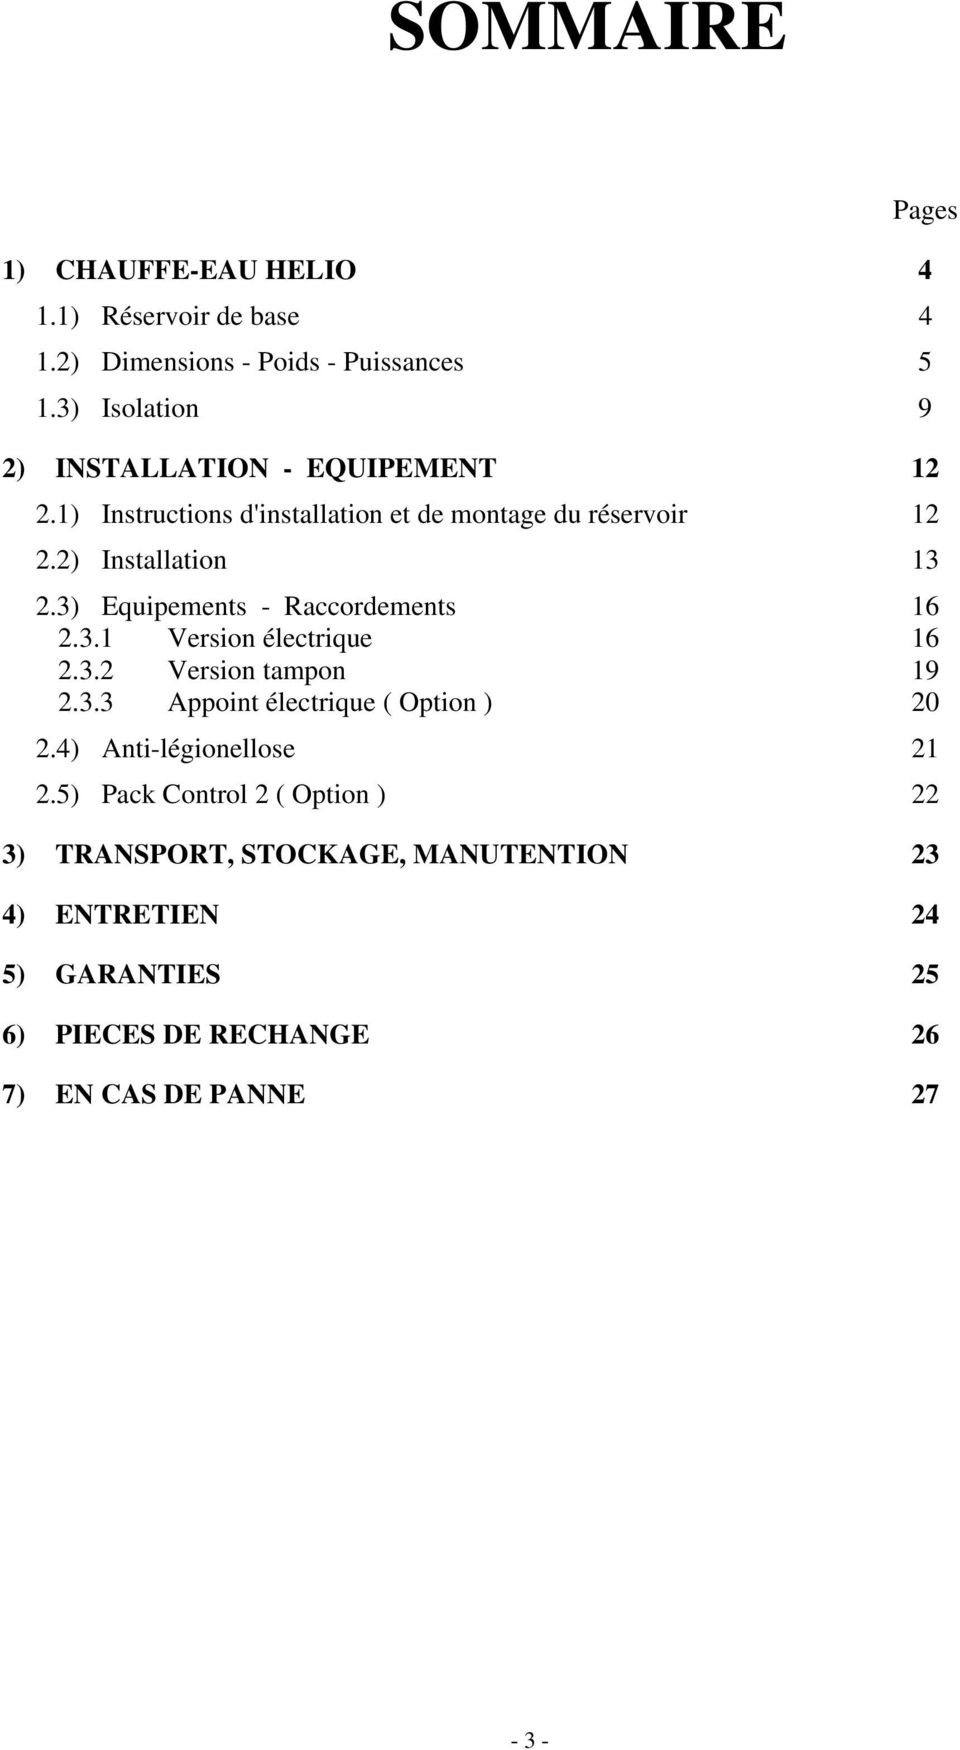 2) Installation 13 2.3) Equipements - Raccordements 16 2.3.1 Version électrique 16 2.3.2 Version tampon 19 2.3.3 Appoint électrique ( Option ) 20 2.